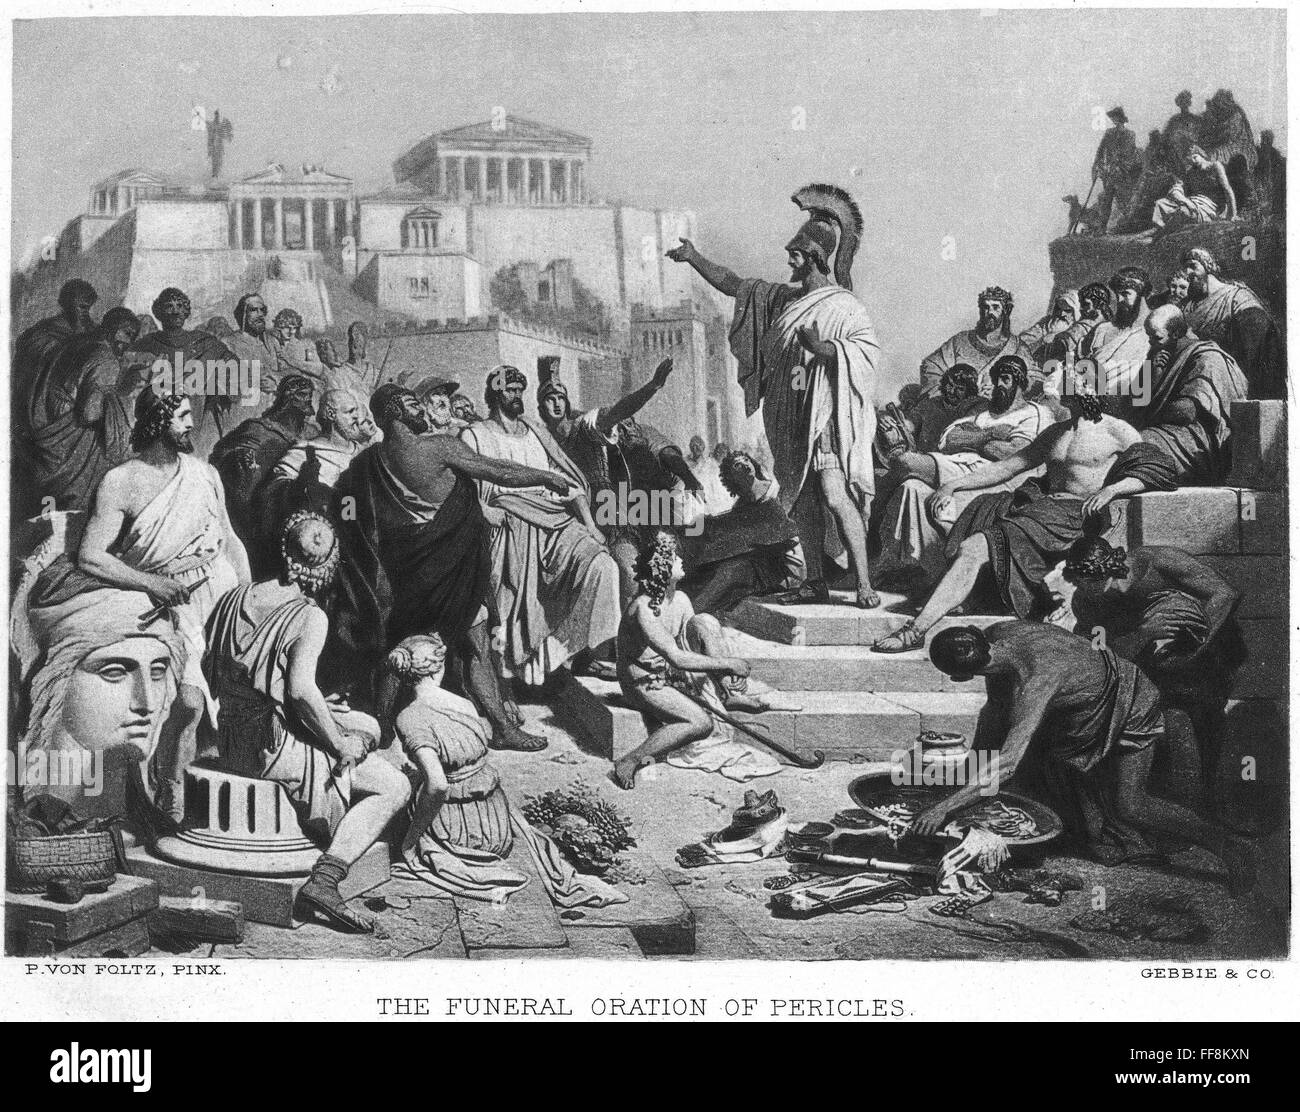 pericles funeral oration essay I do not think that everything pericles said in his funeral oration was true pericles goes on and on about how great the athens city-state had become a strong democratic government.